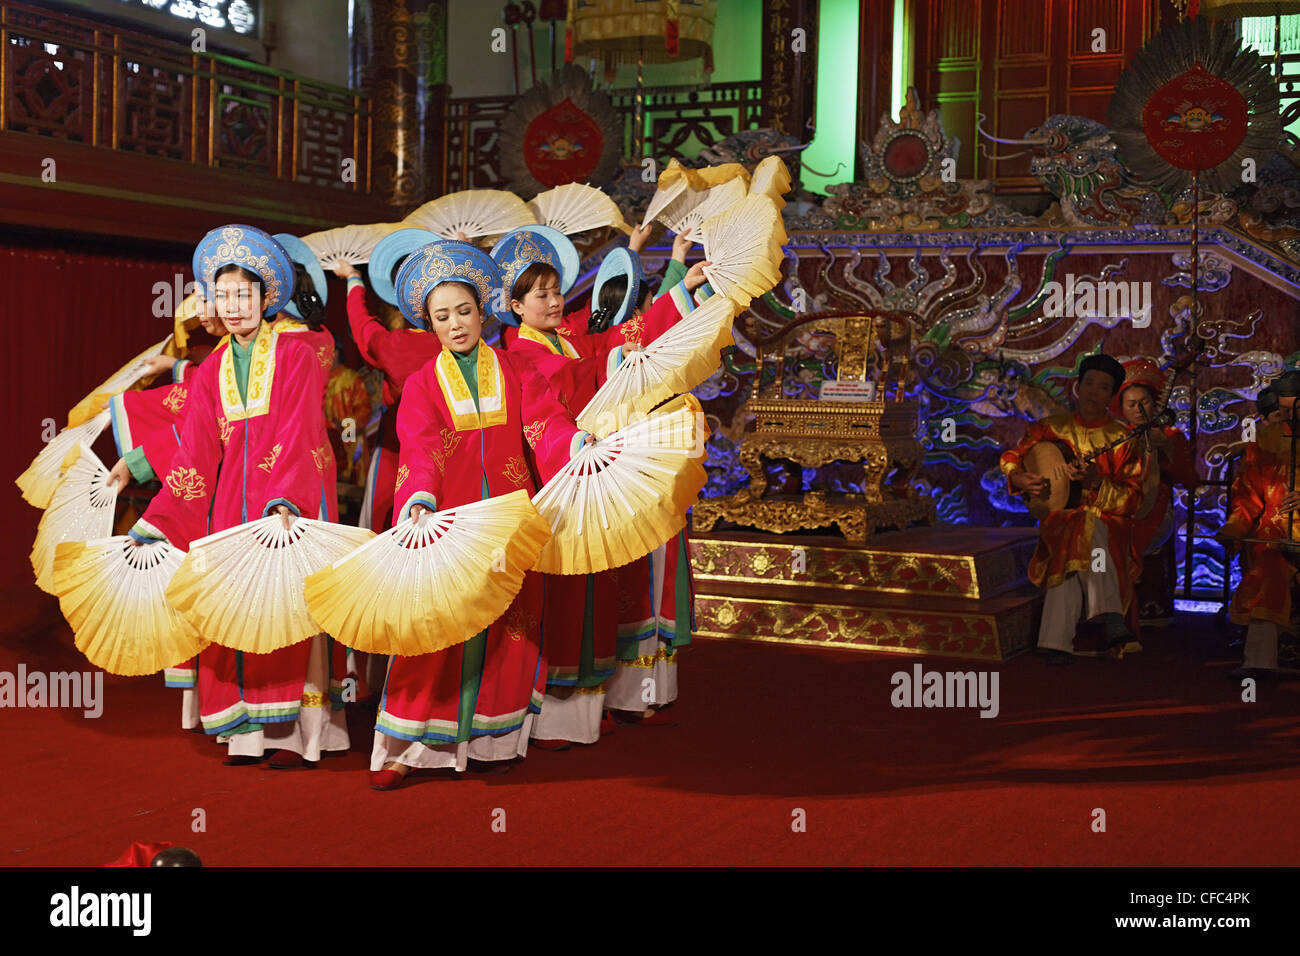 Theater play, Imperial Theater, Citadel, Imperial City, Hue, Trung Bo, Vietnam Stock Photo